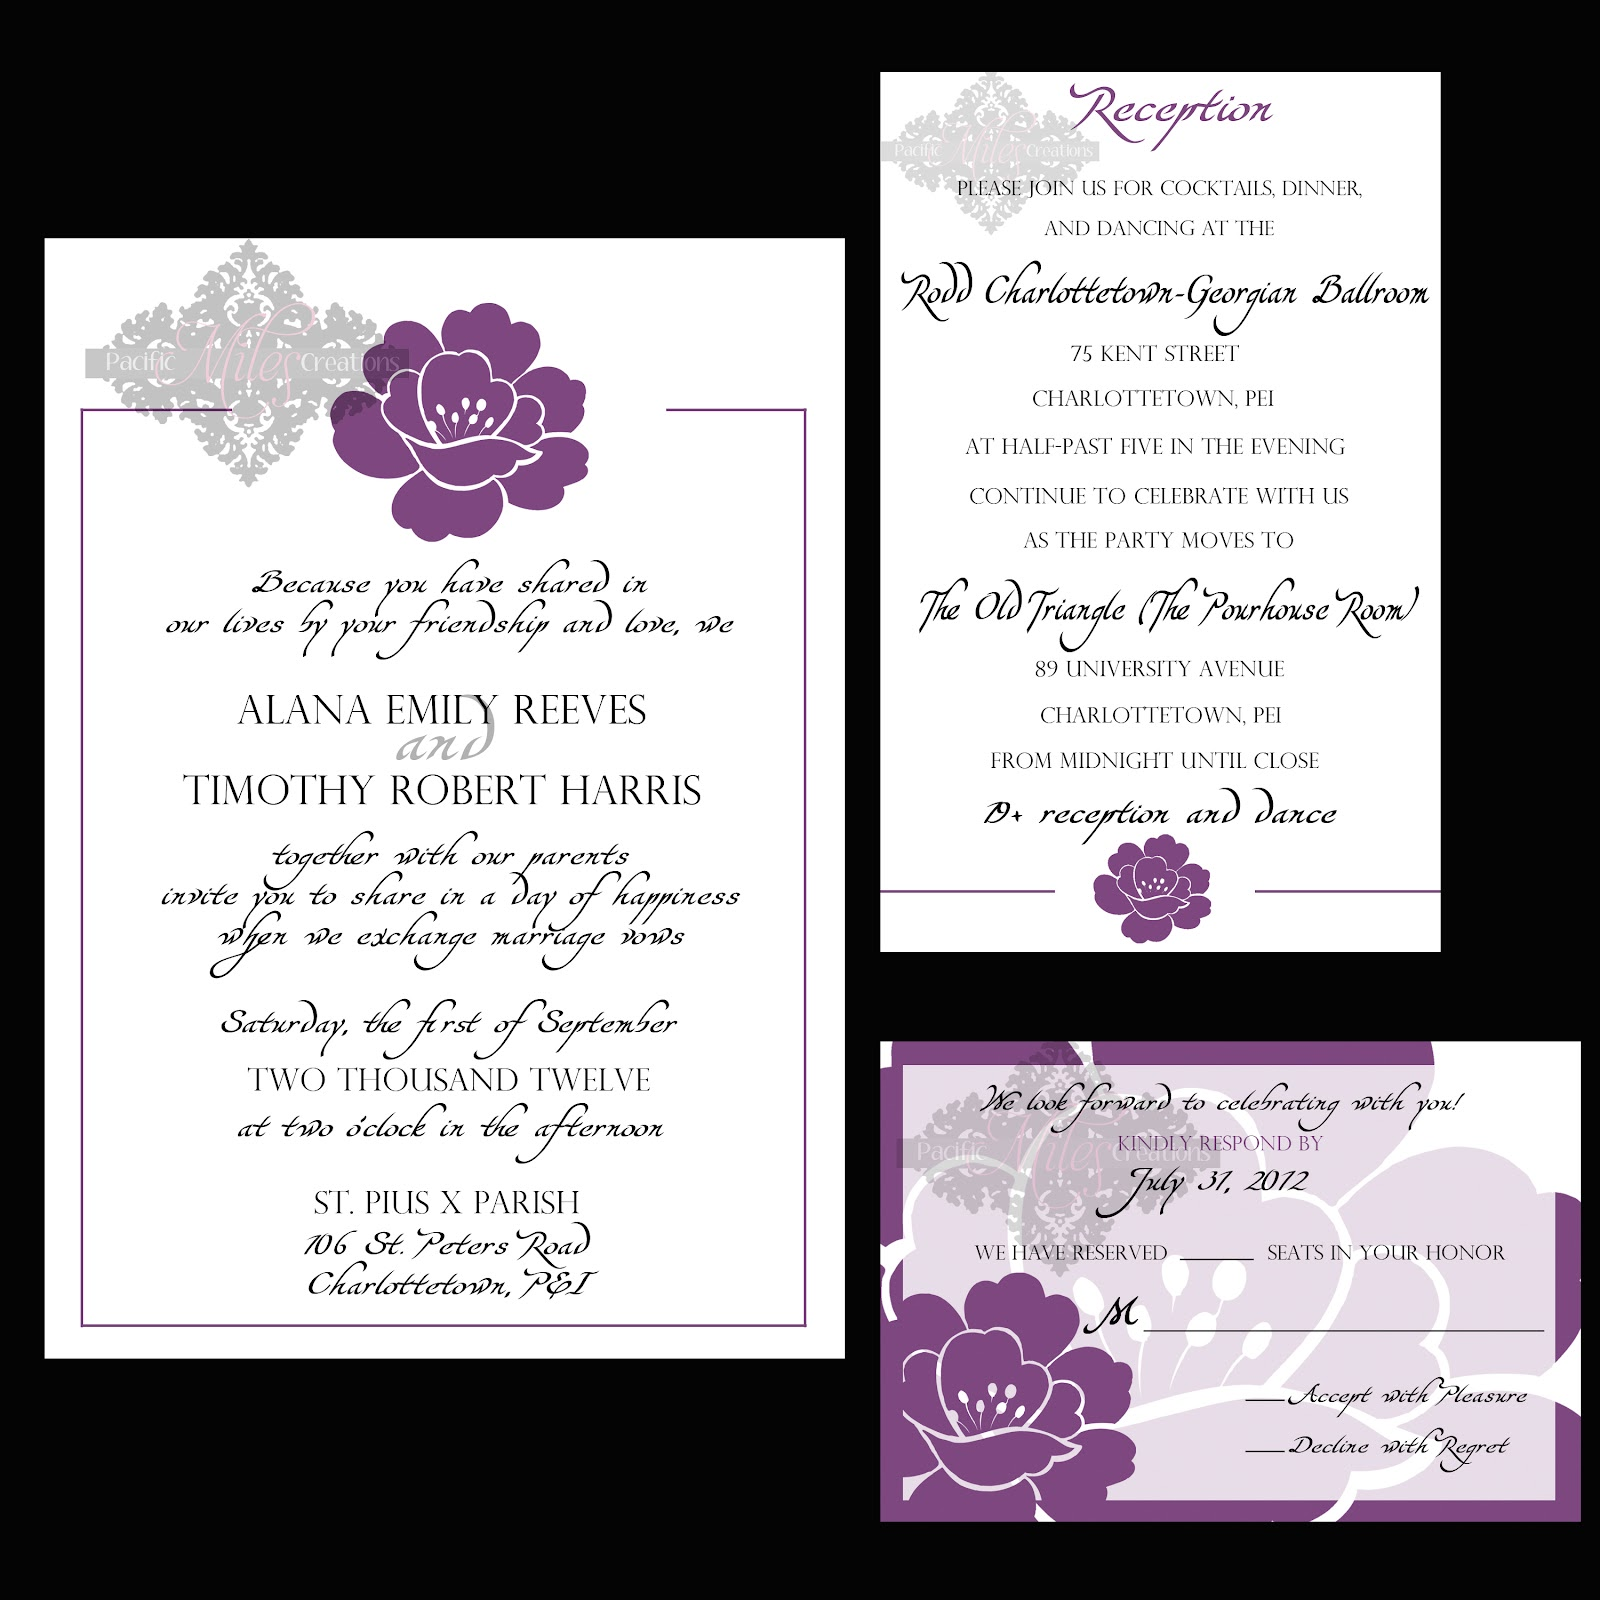 Wedding Pictures Wedding Photos Photo Wedding Invitations